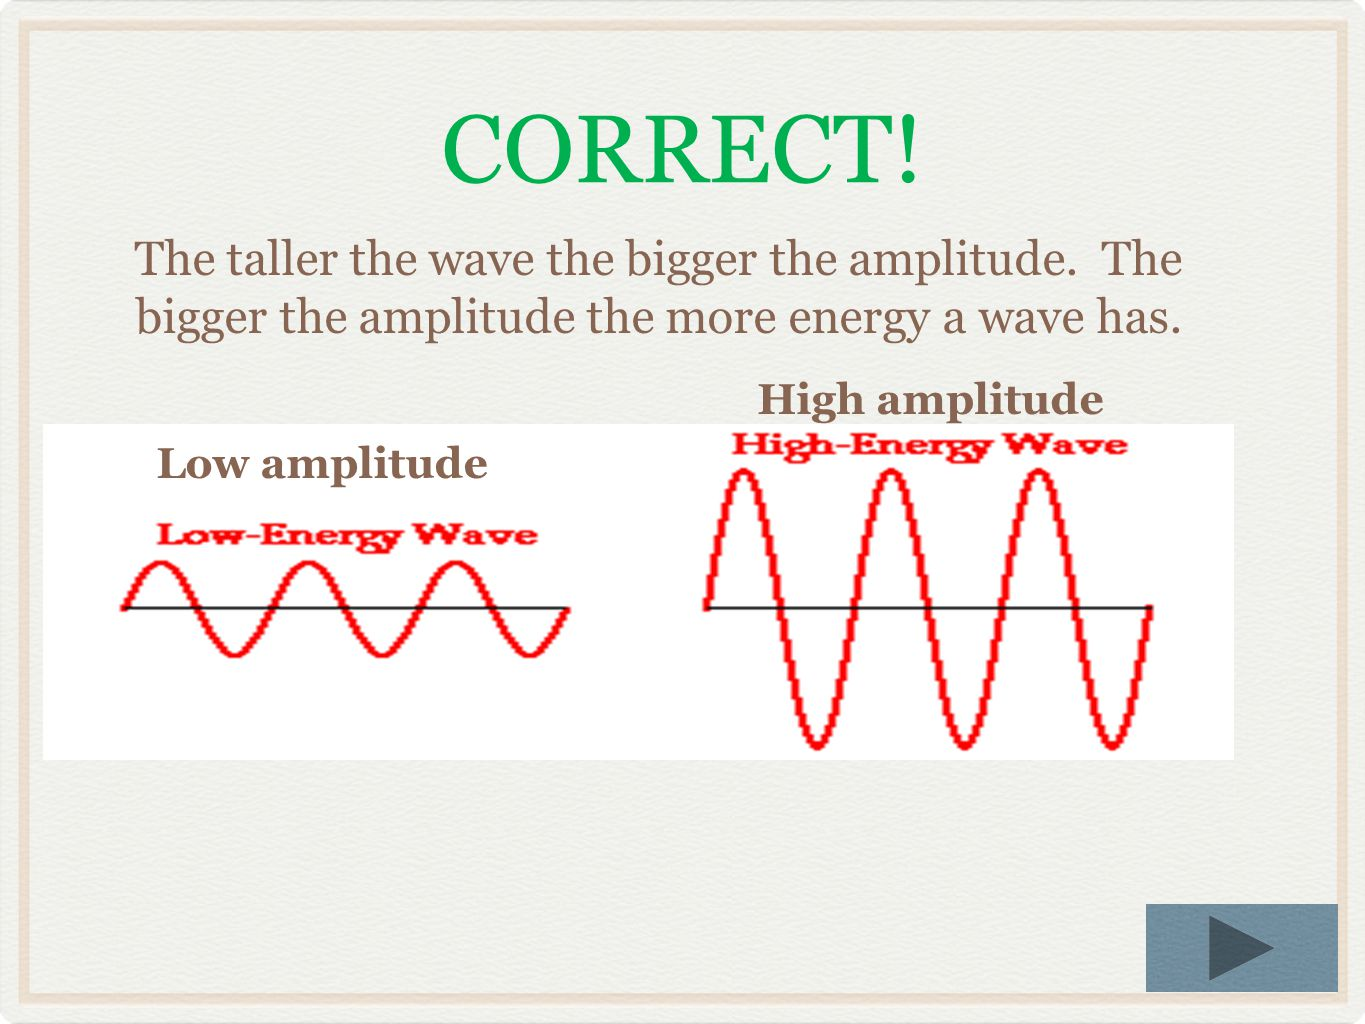 CORRECT! The taller the wave the bigger the amplitude. The bigger the amplitude the more energy a wave has.